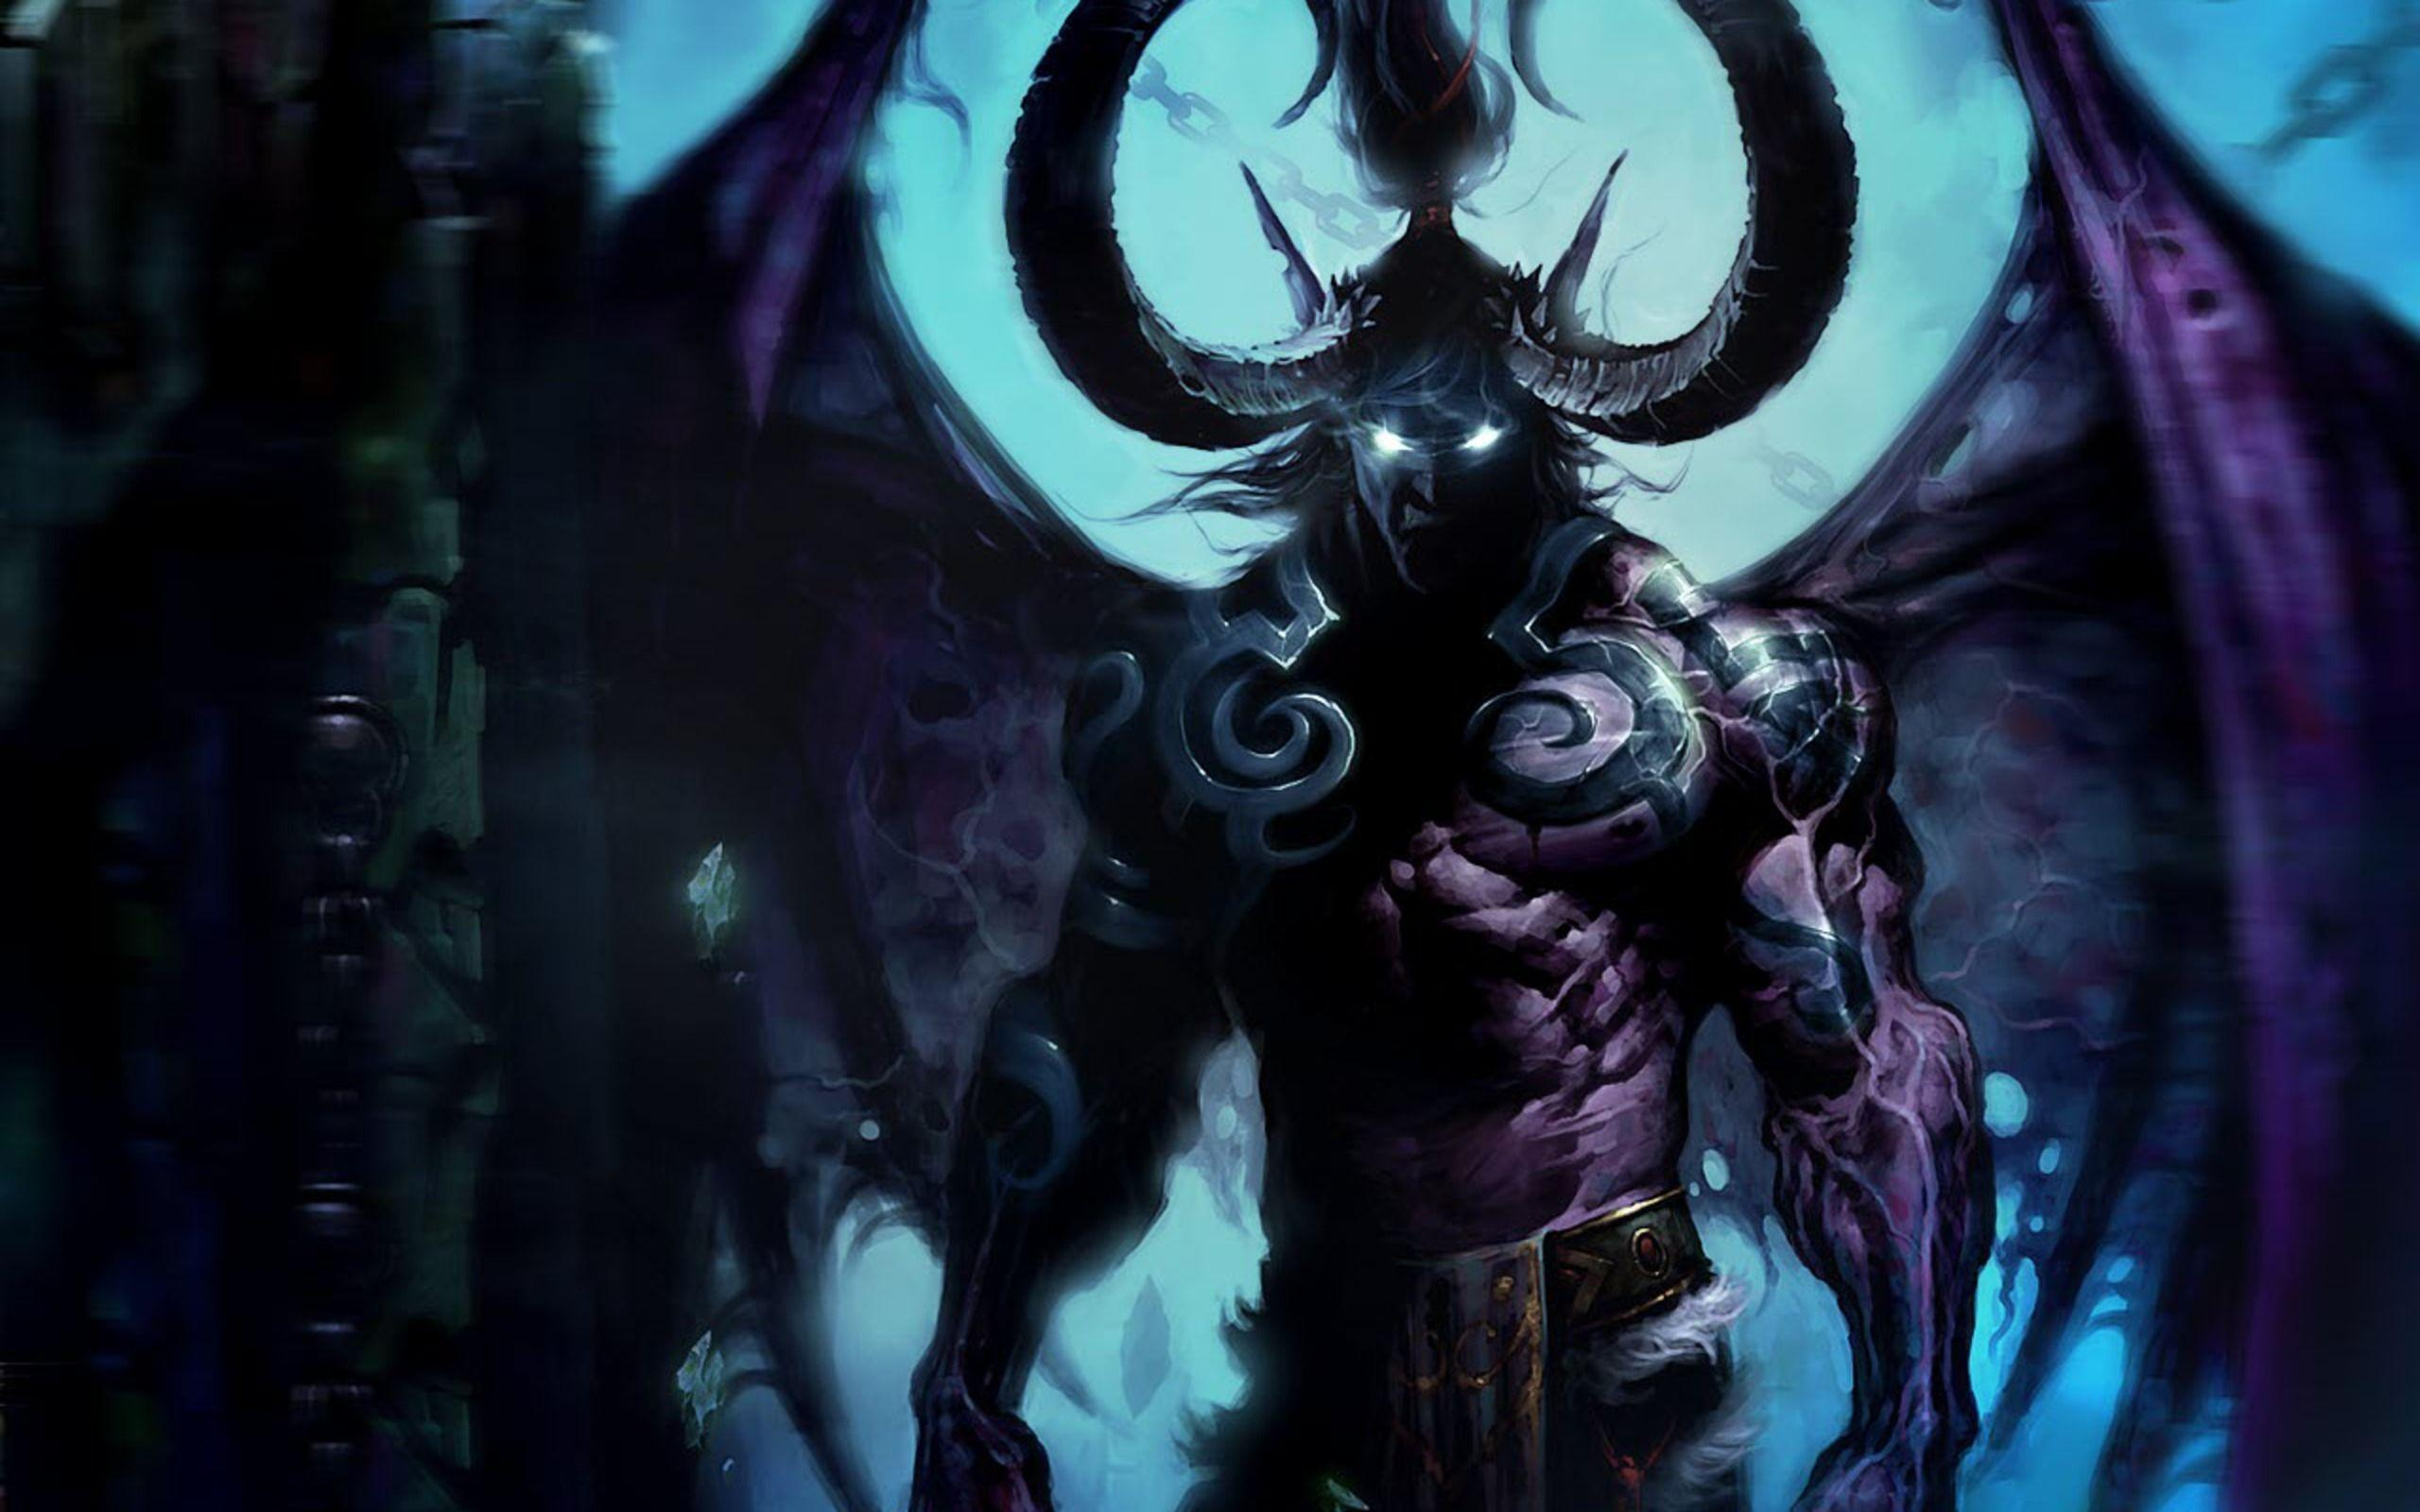 Demon Wallpapers With Demonic Features